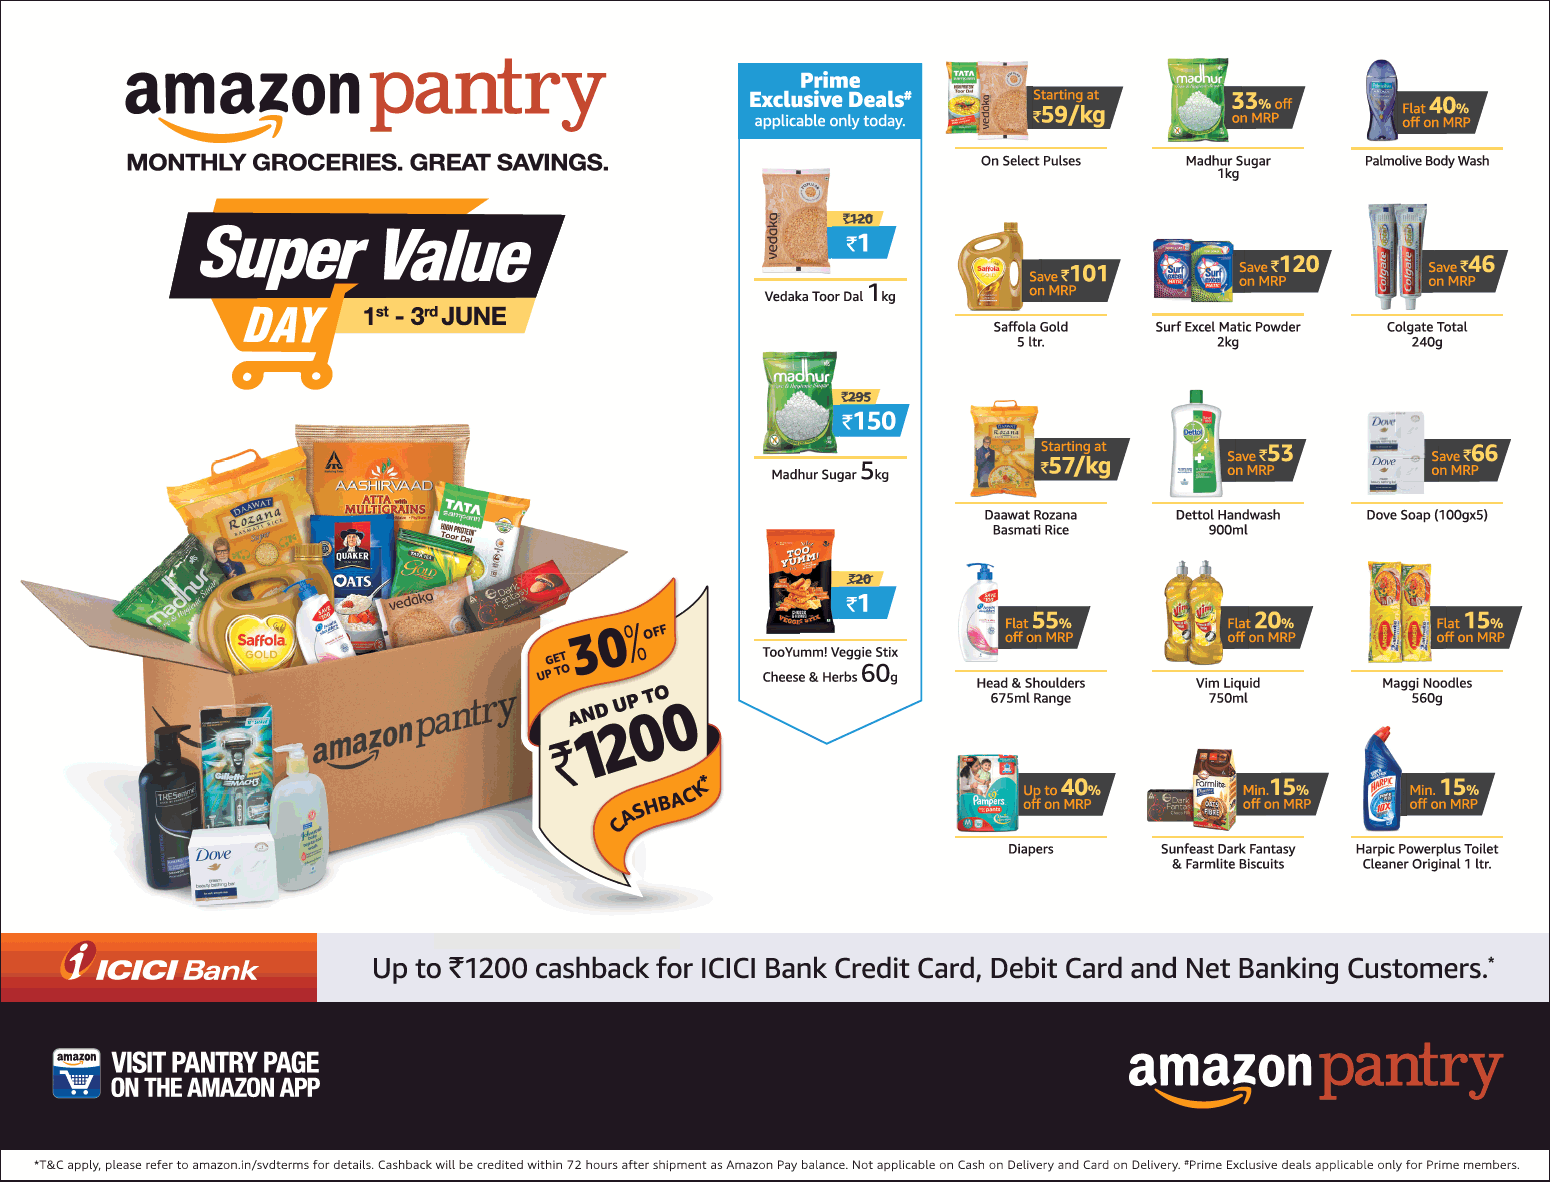 Amazon Pantry Super Value Day 1 To 3 June Ad Times Of India Mumbai Check Out Amazon Advertisement Collection At Https Www Ad Ads Newspaper Advertisement Day